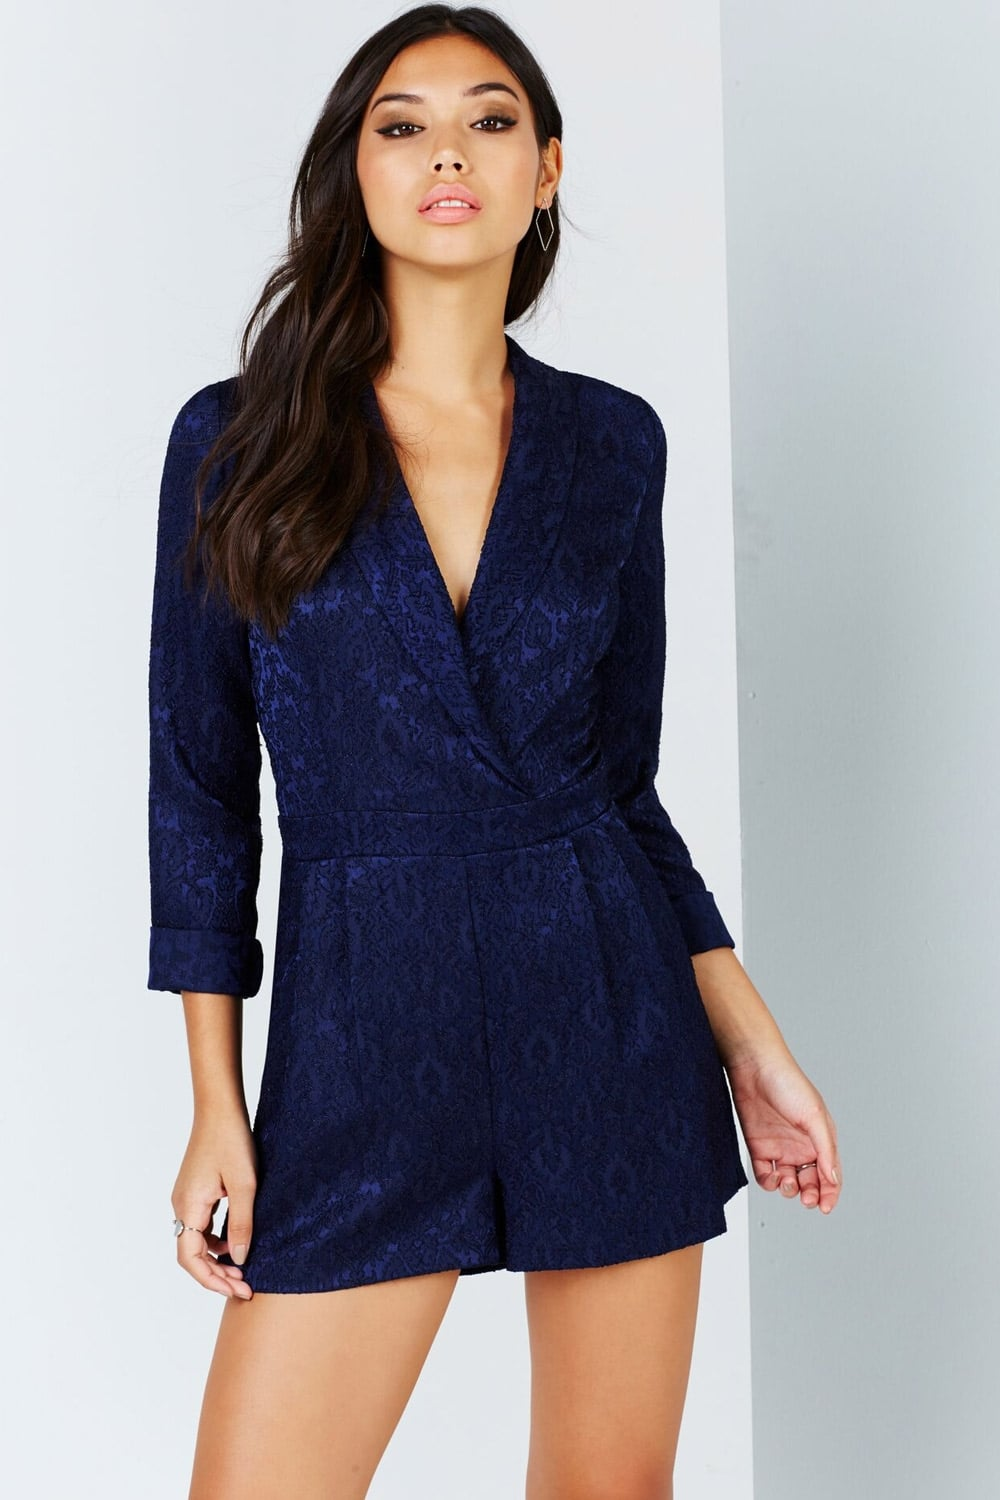 6b8e344db5 Outlet Girls On Film Navy Jacquard Playsuit - Outlet Girls On Film from Little  Mistress UK